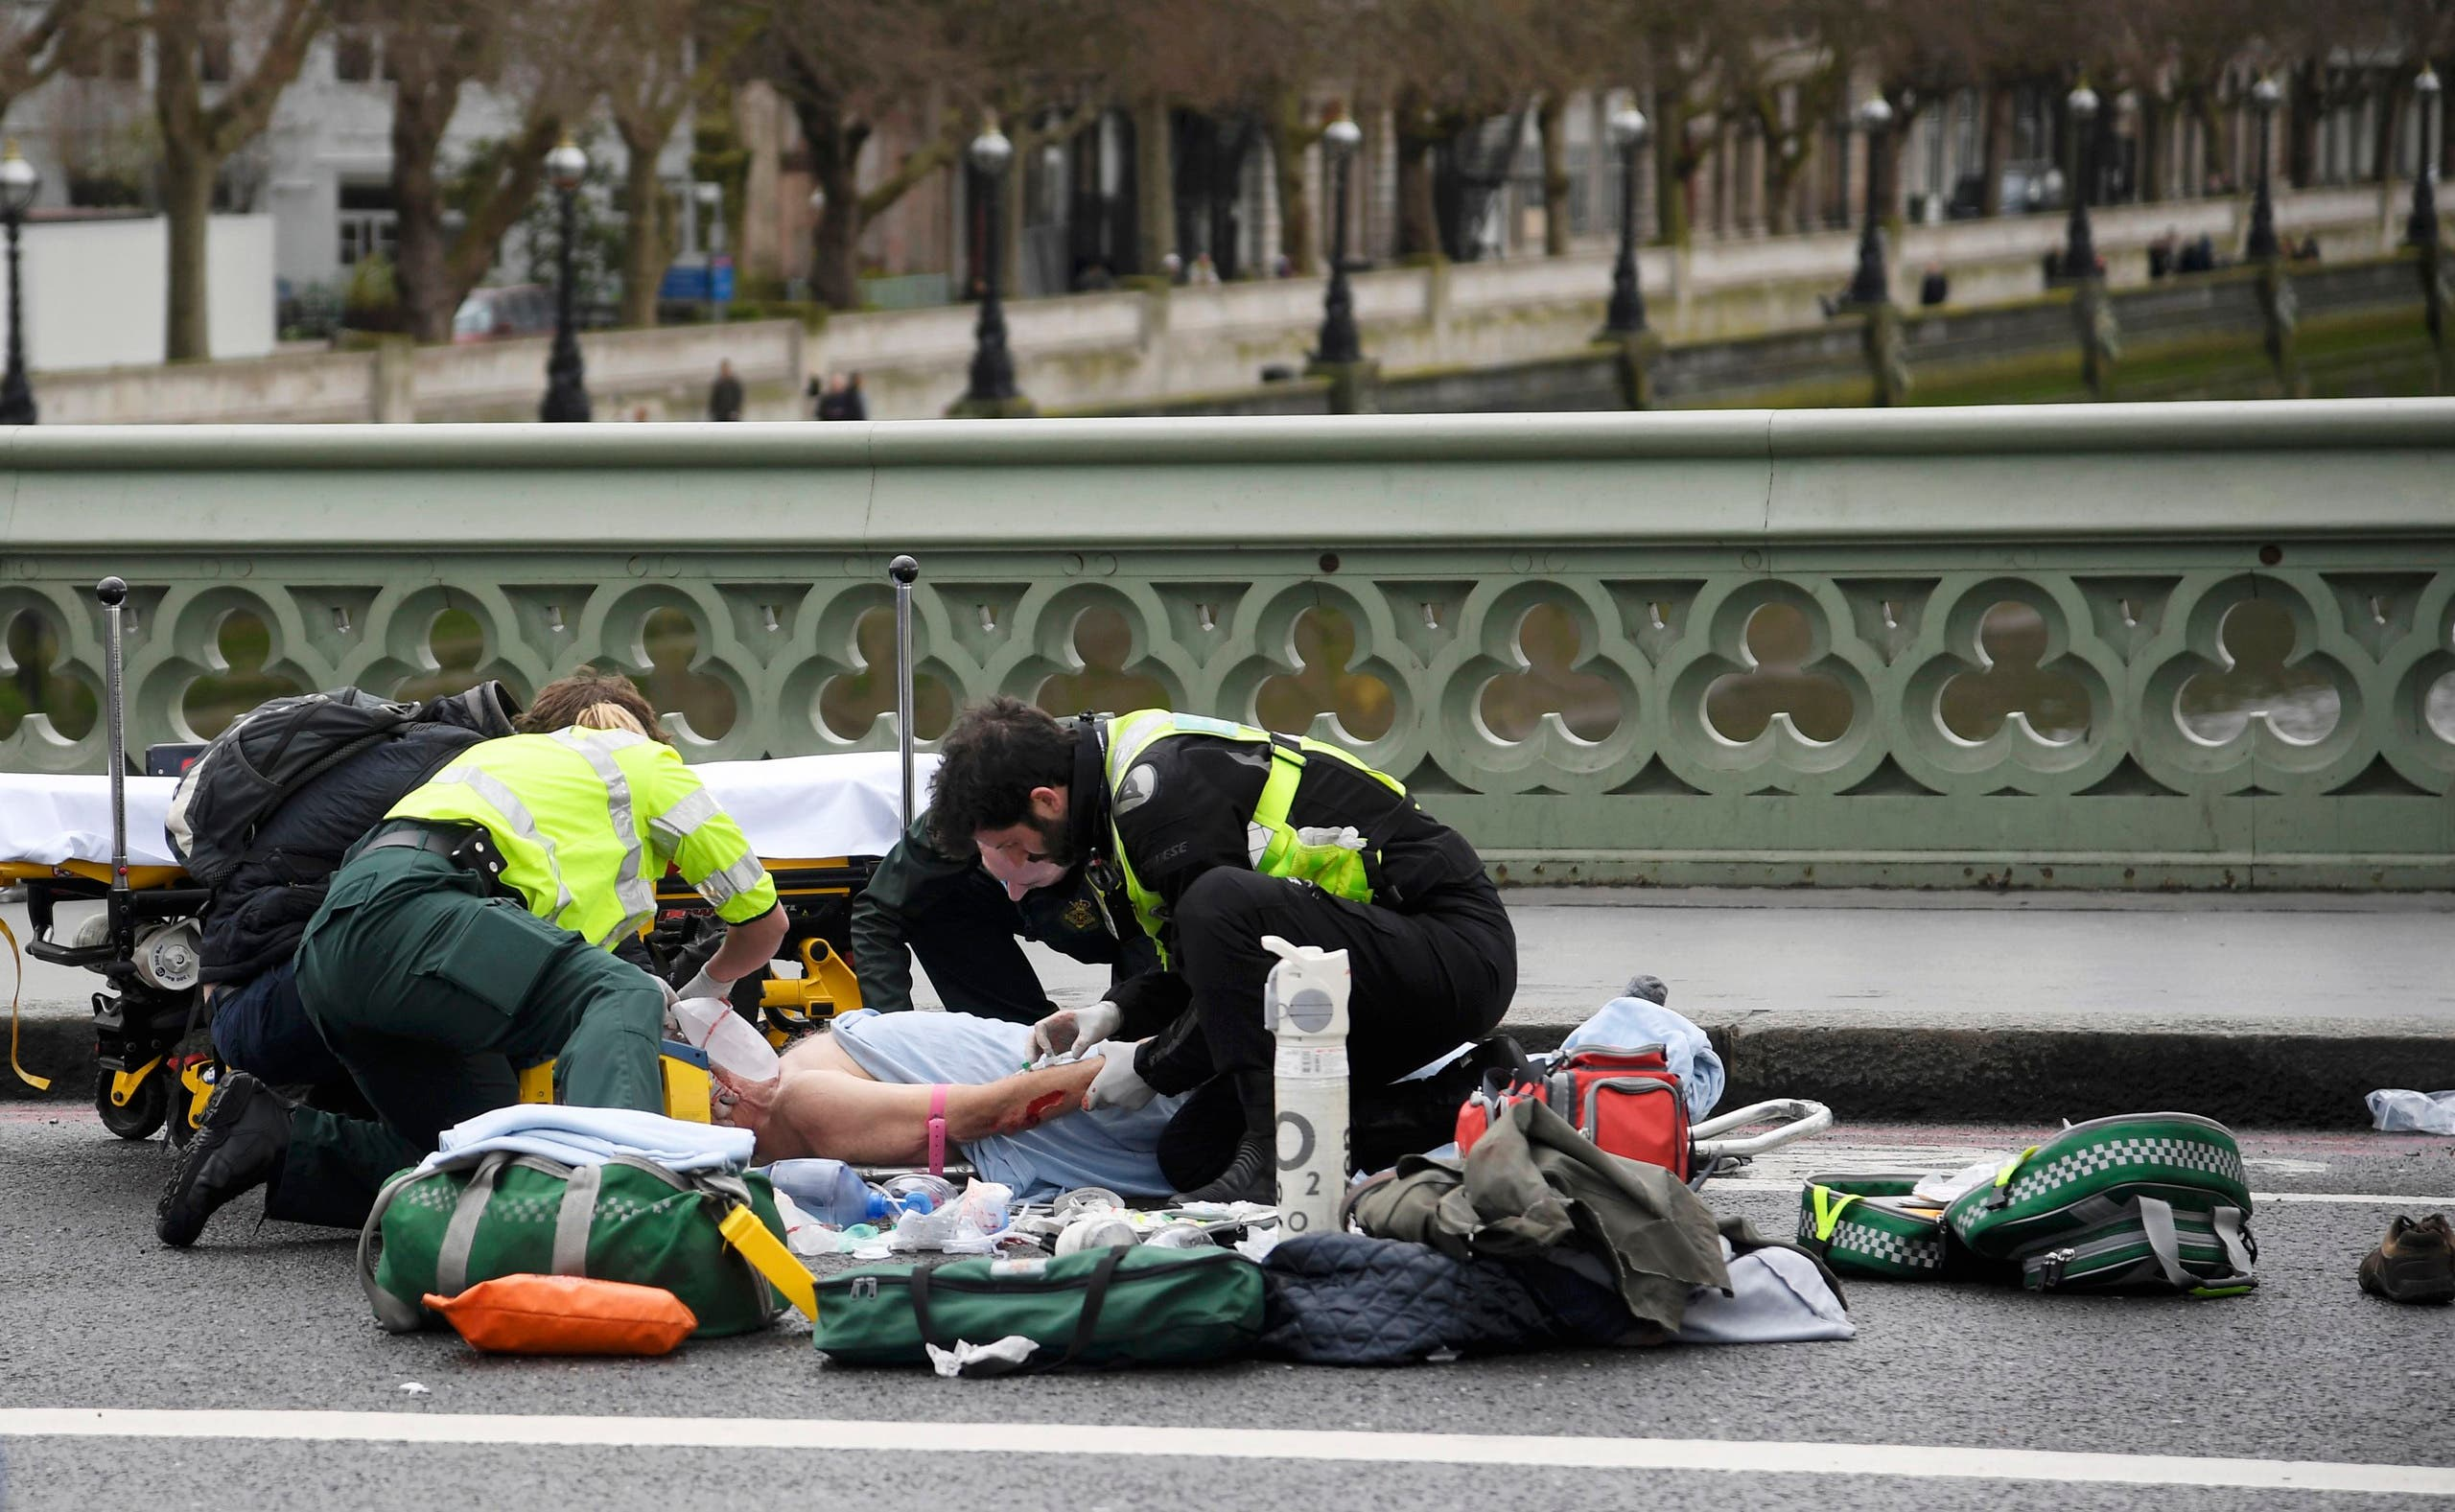 Paramedics treat an inured person after an incident on Westminster Bridge in London, March 22, 2017. reuters